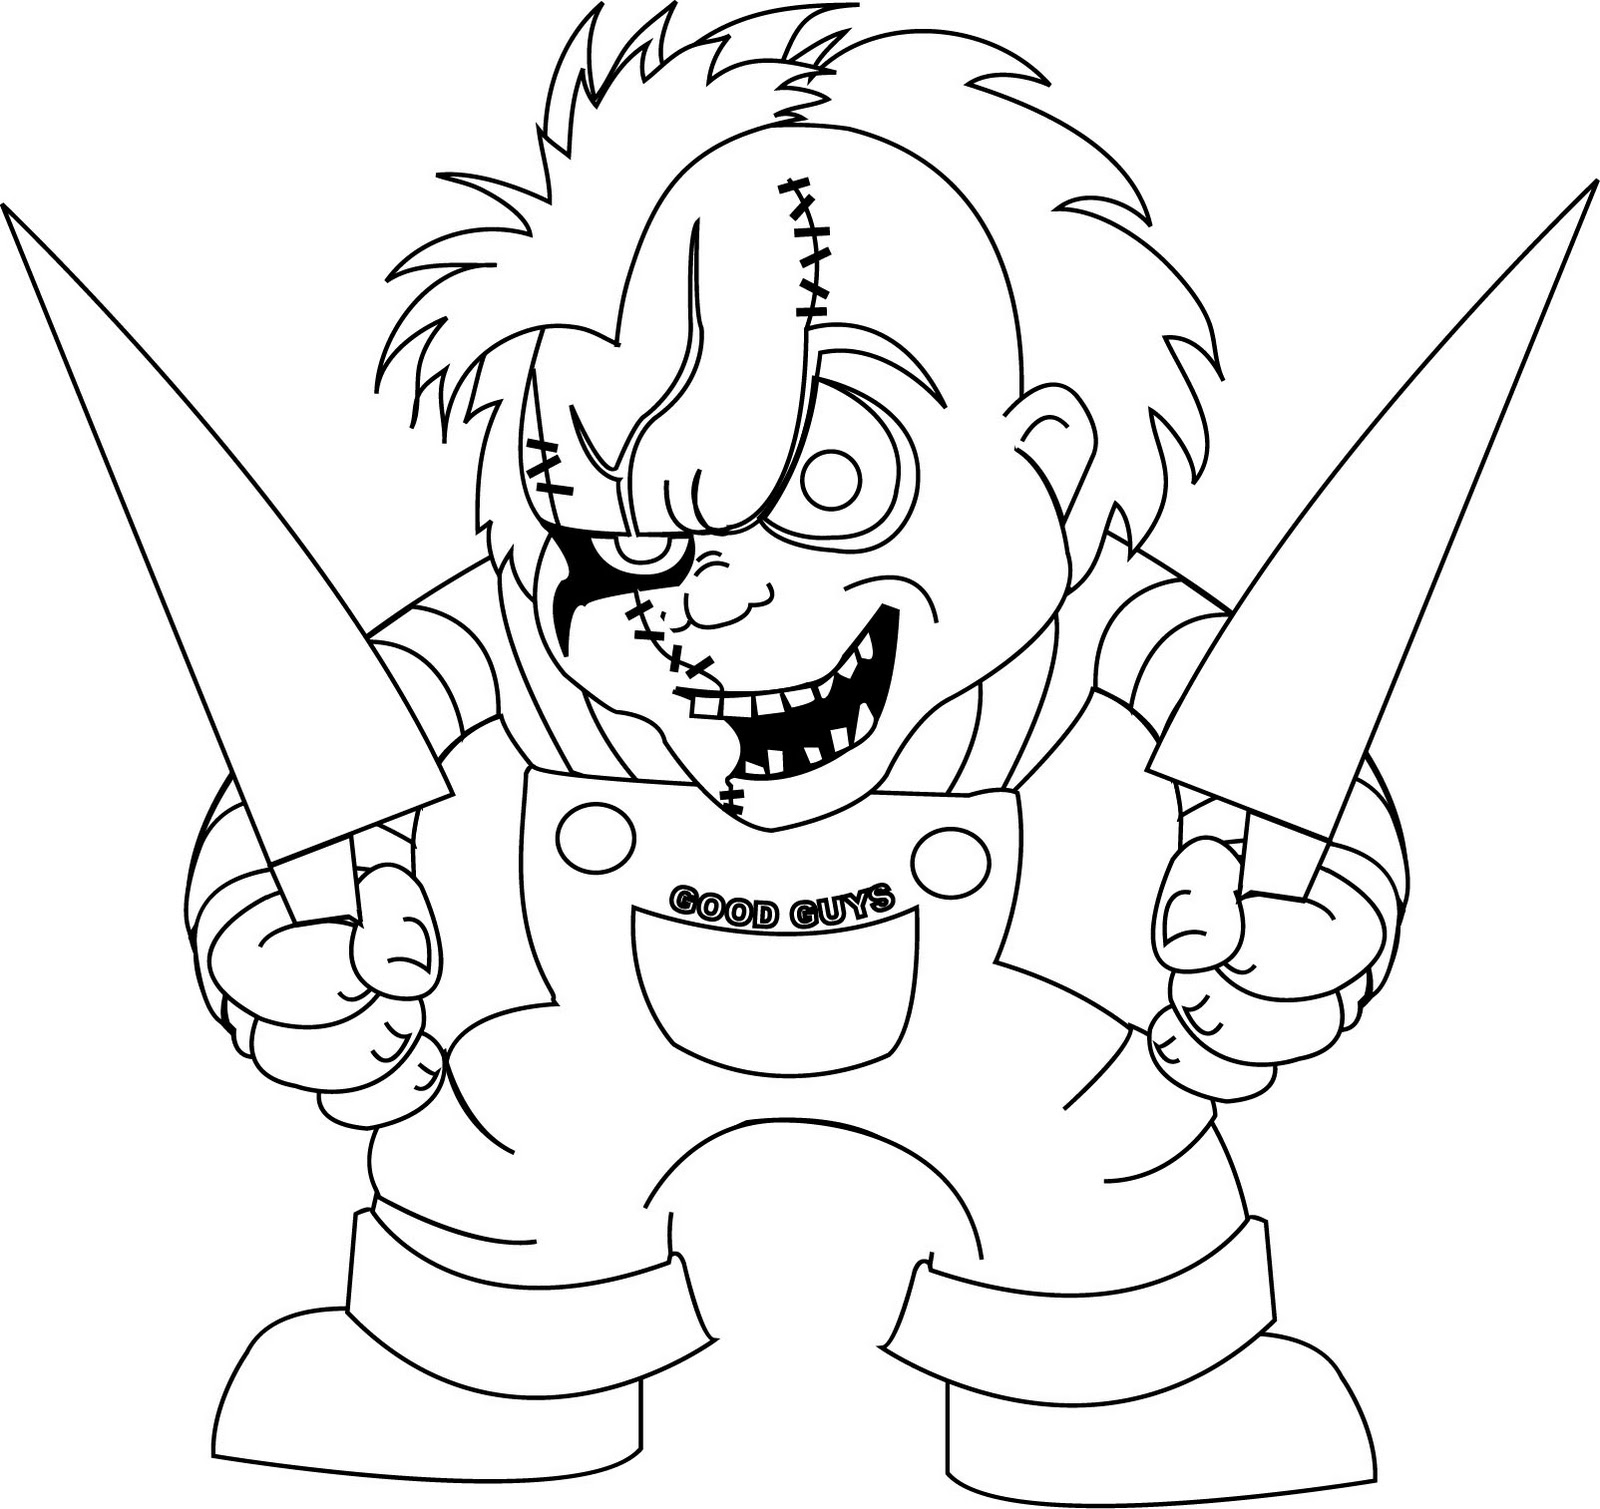 Coloring Pages Chucky Doll Coloring Pages freddy krueger coloring pages eassume com jason voorhees eassume